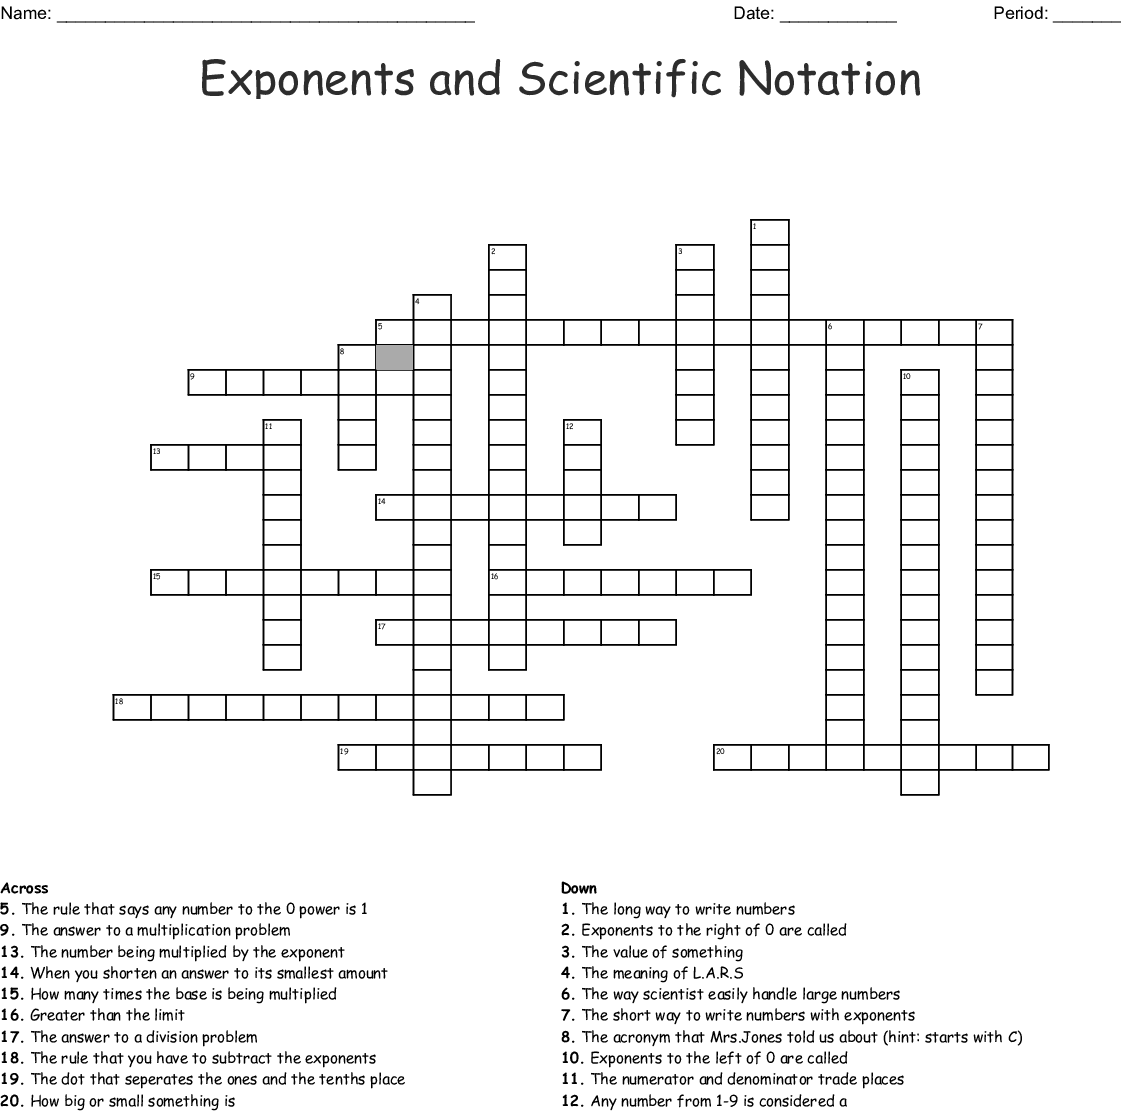 Exponents And Scientific Notation Crossword